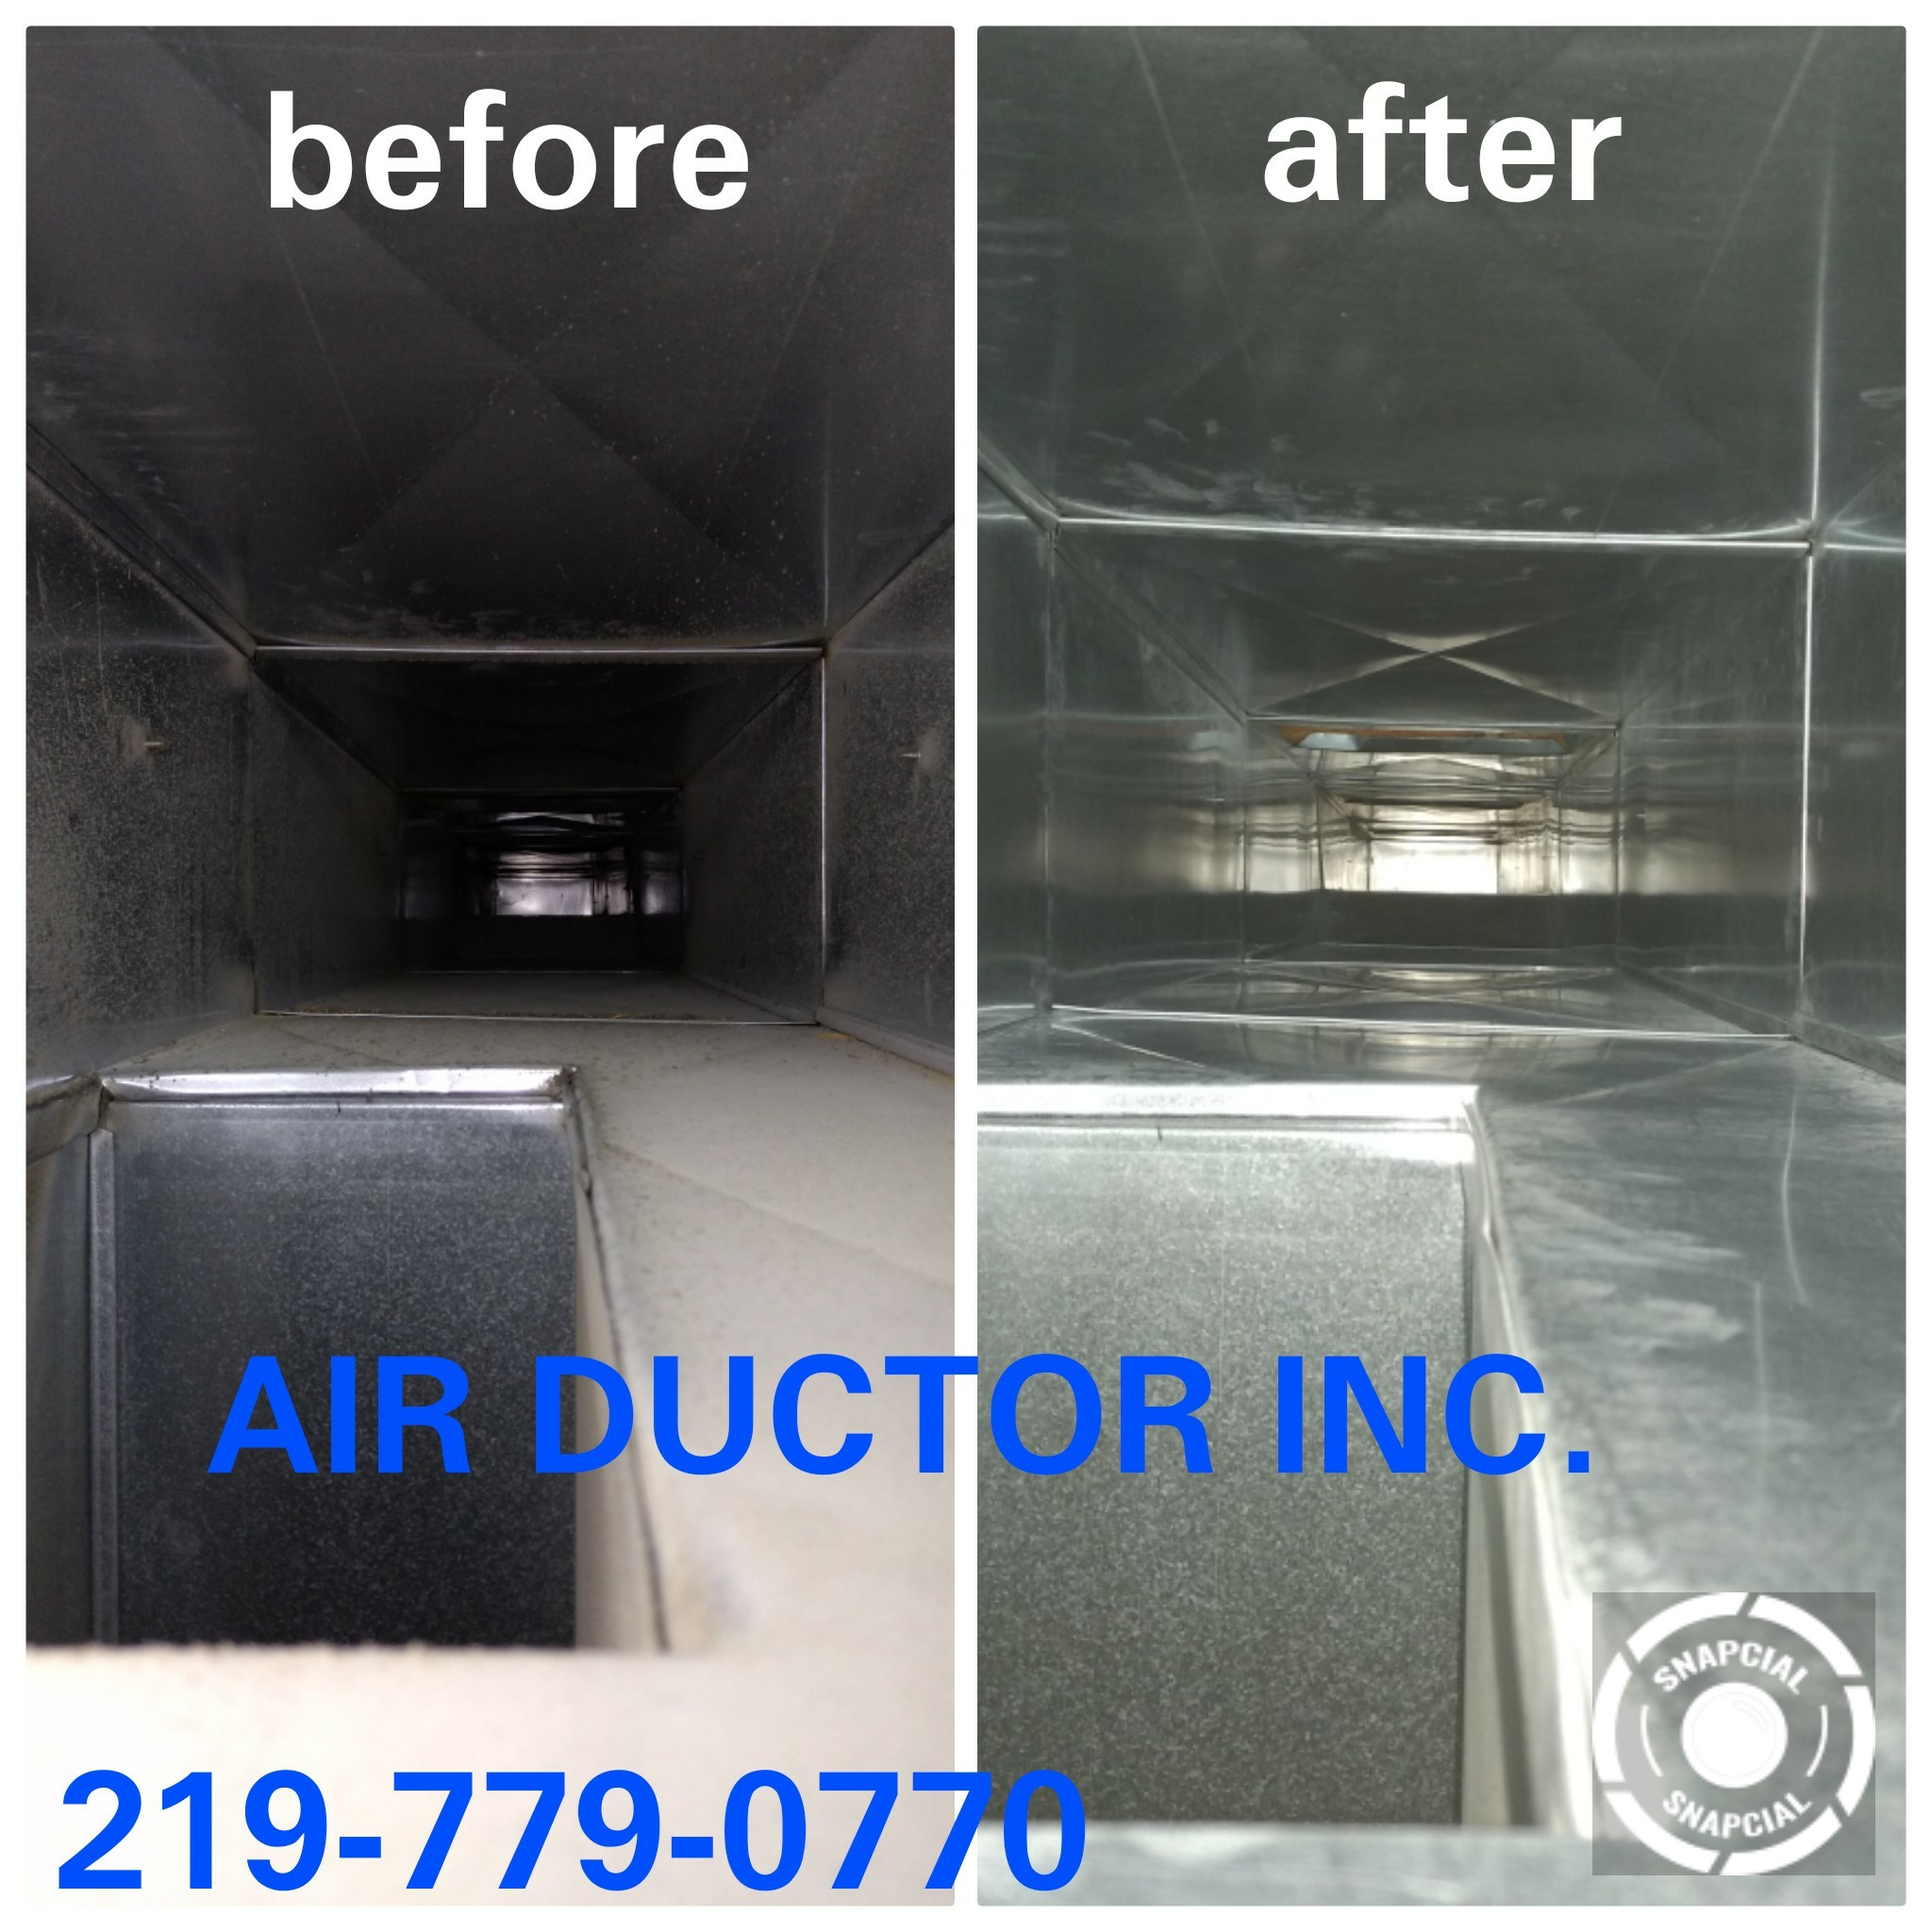 Air duct pictures before and after of a dirty then clean air duct.